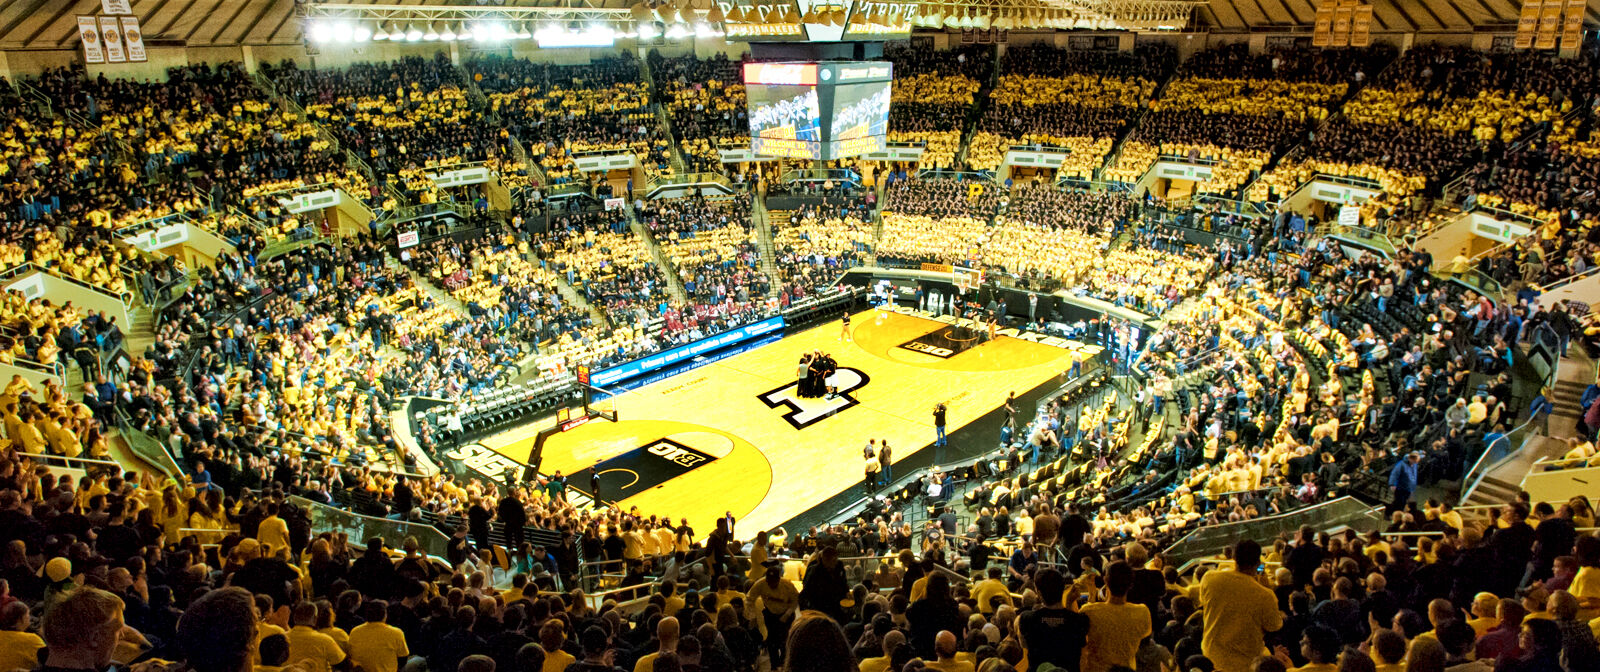 Minnesota Golden Gophers at Purdue Boilermakers Basketball